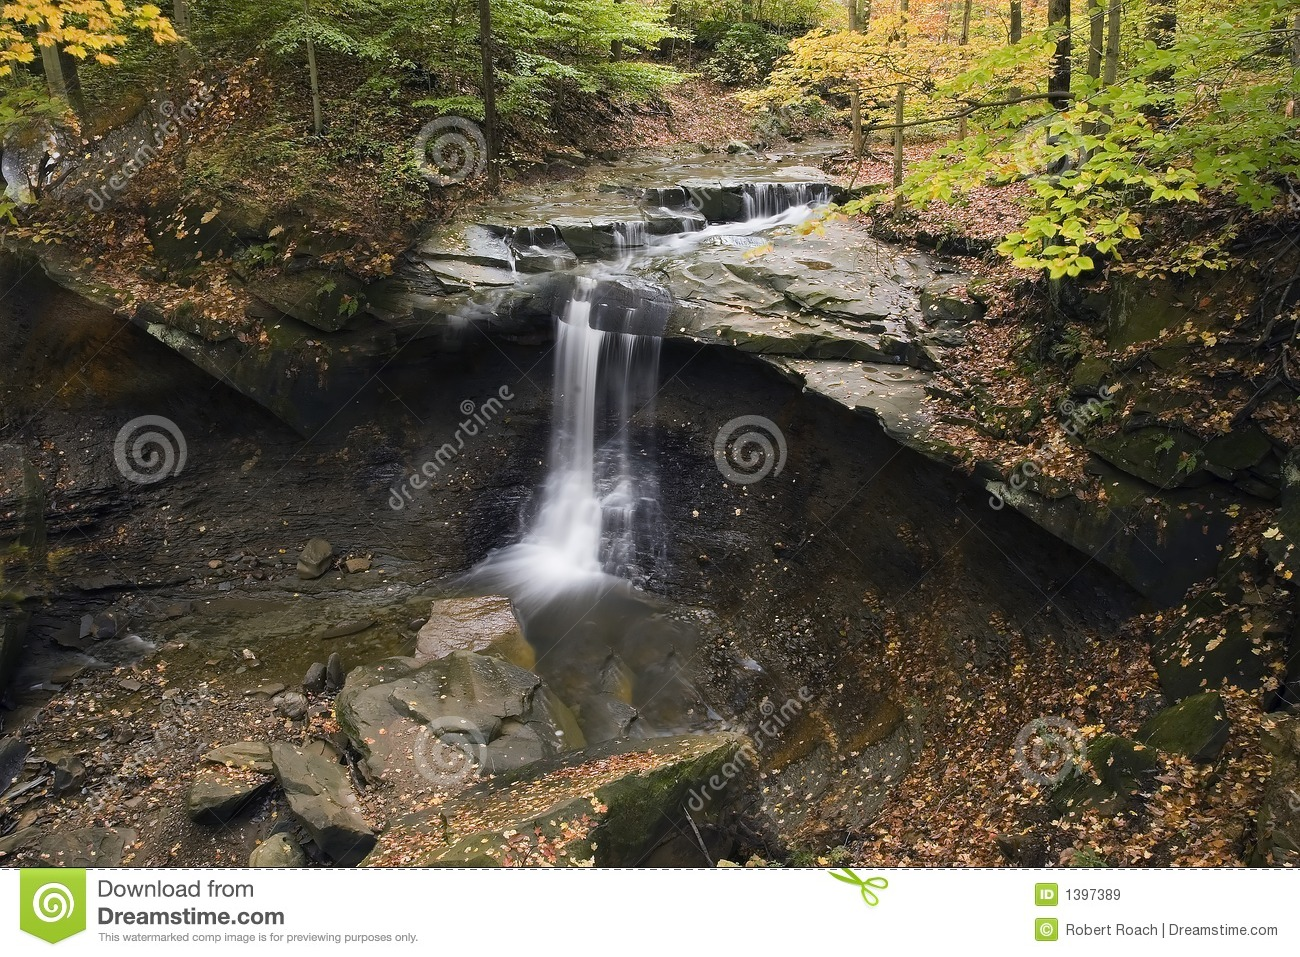 Beautiful waterfall with fallen leaves and colorful trees